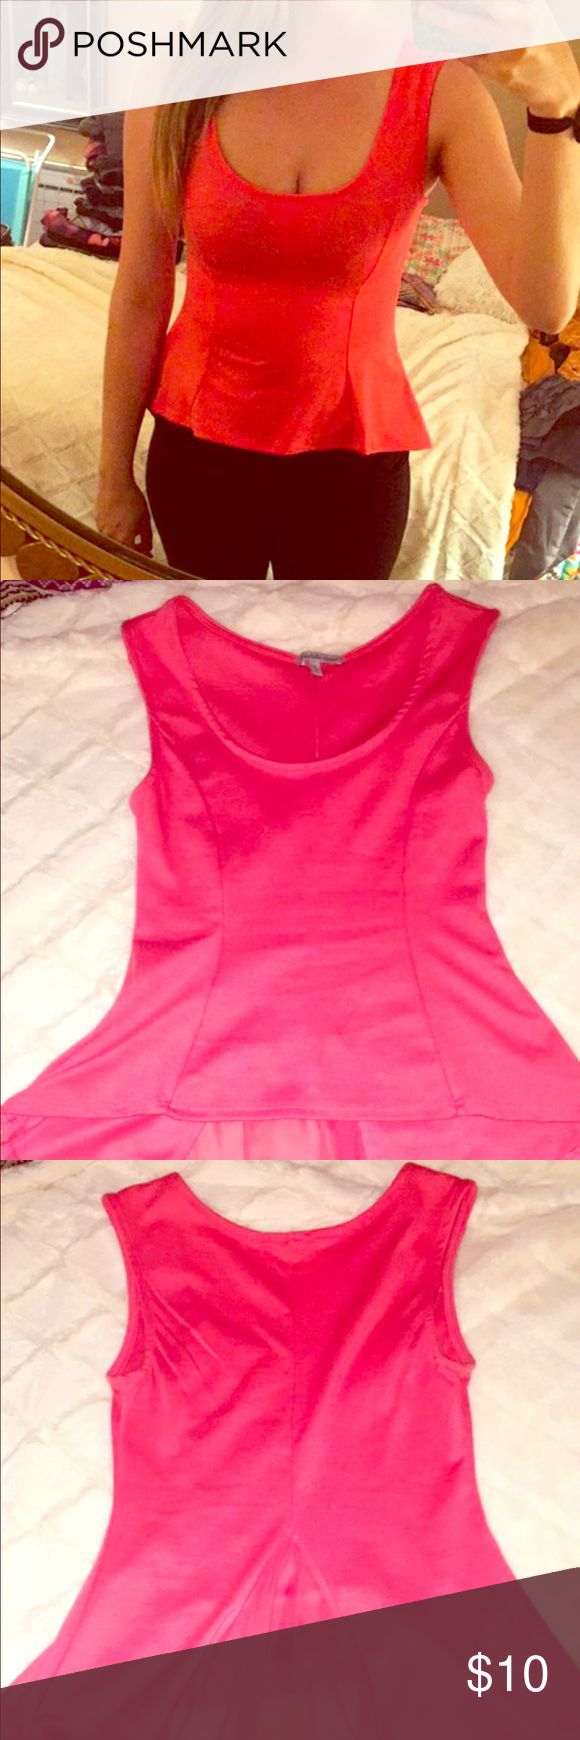 Pink Peplum Top Super cute top! Worn once to an interview. Can be dressed up or dressed down. No flaws! Charlotte Russe Tops Tank Tops